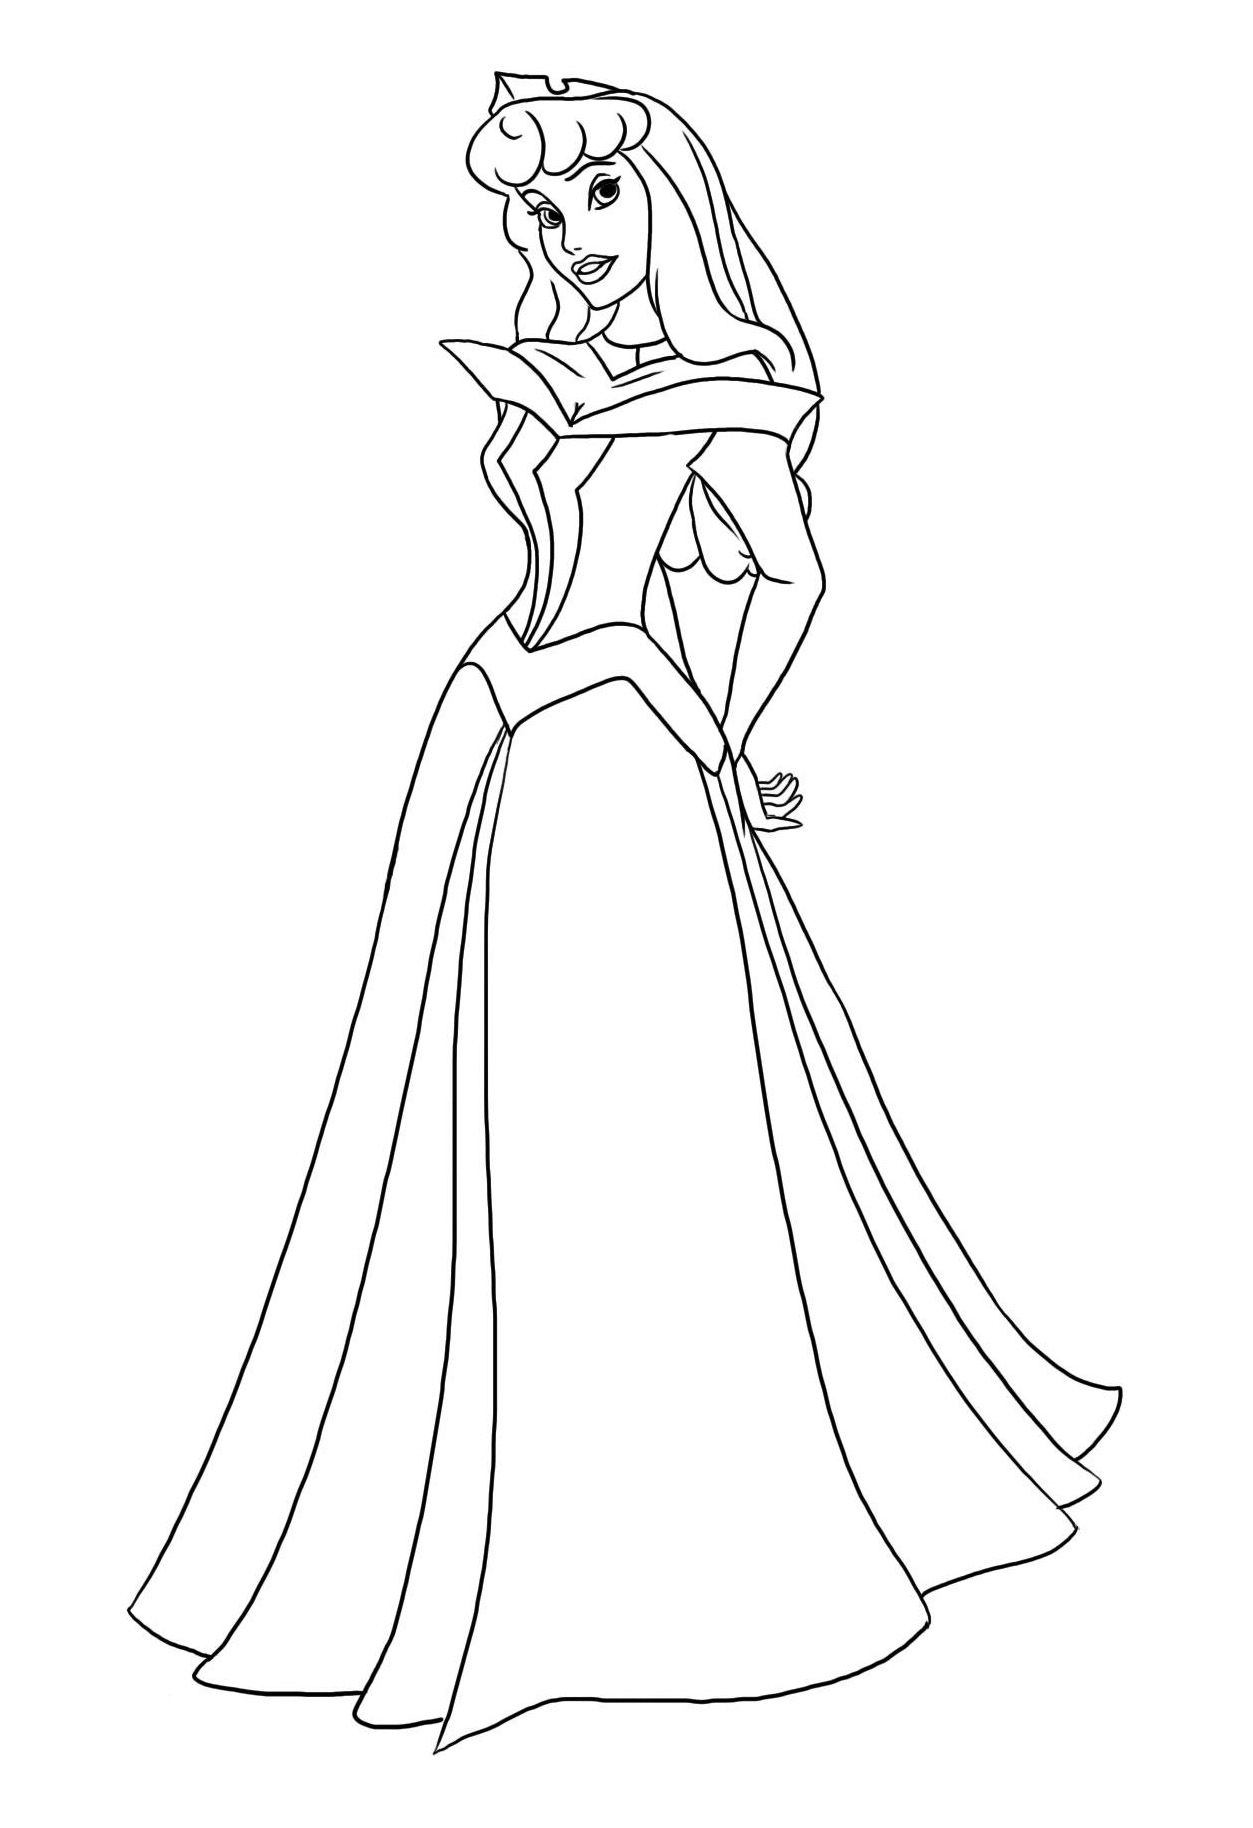 Coloriage princesse colorier dessin imprimer animaux princess coloring pages disney - Dessiner disney ...